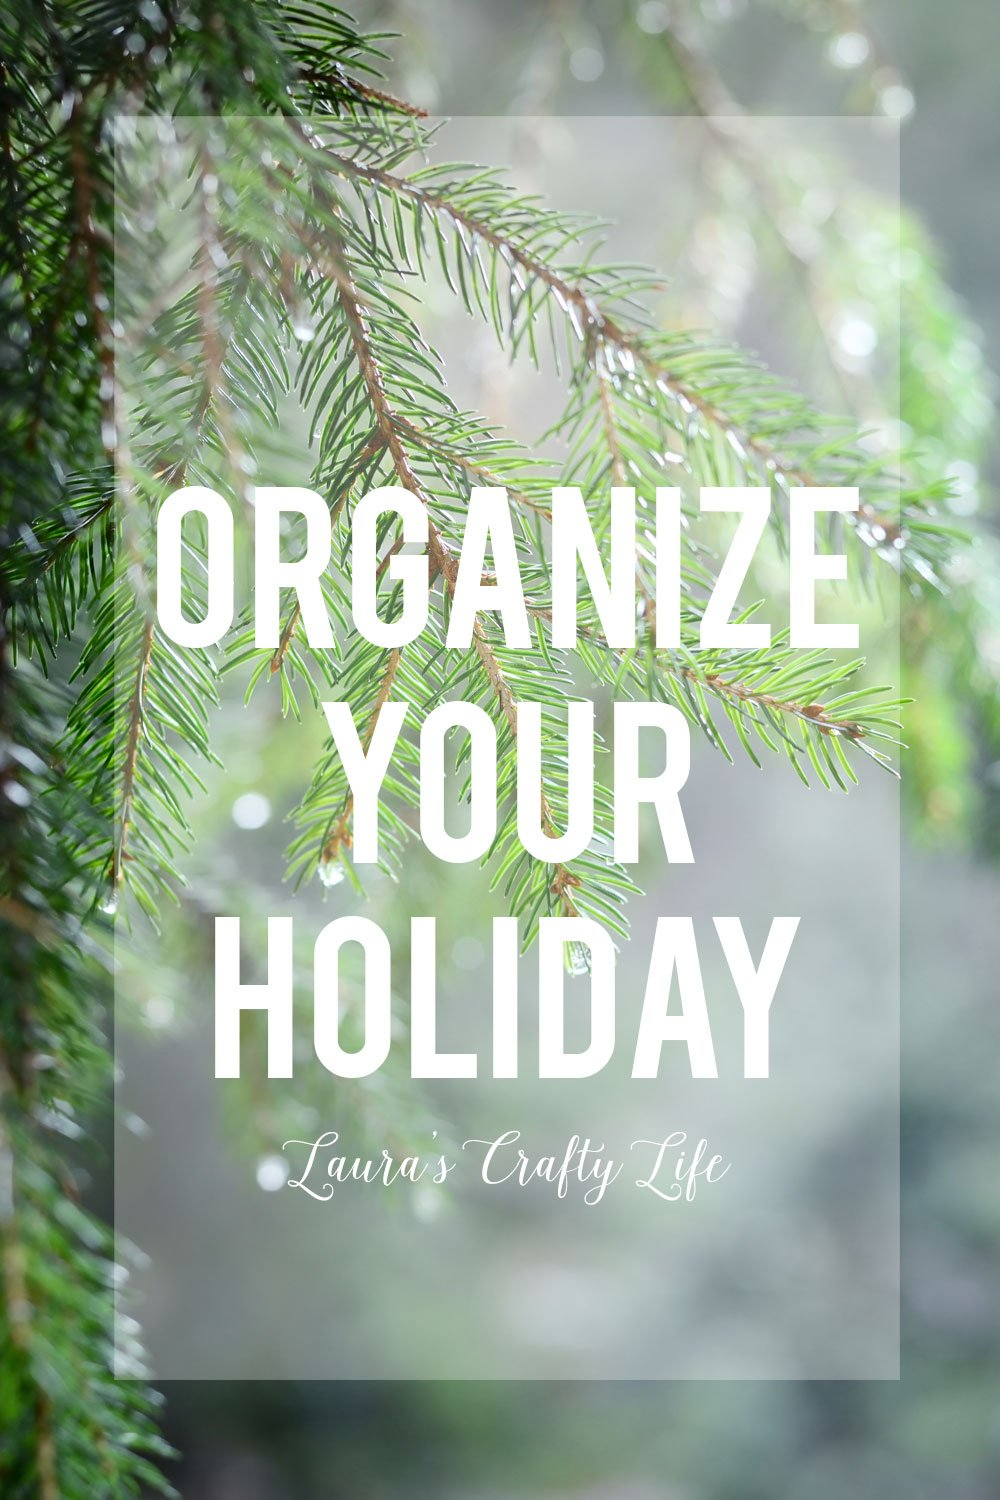 Organize Your Holiday. Create a holiday binder to organize everything holiday related for a relaxing and calm holiday season. Print out a free printable holiday bucket list. #laurascraftylife #organize #holiday #freeprintable